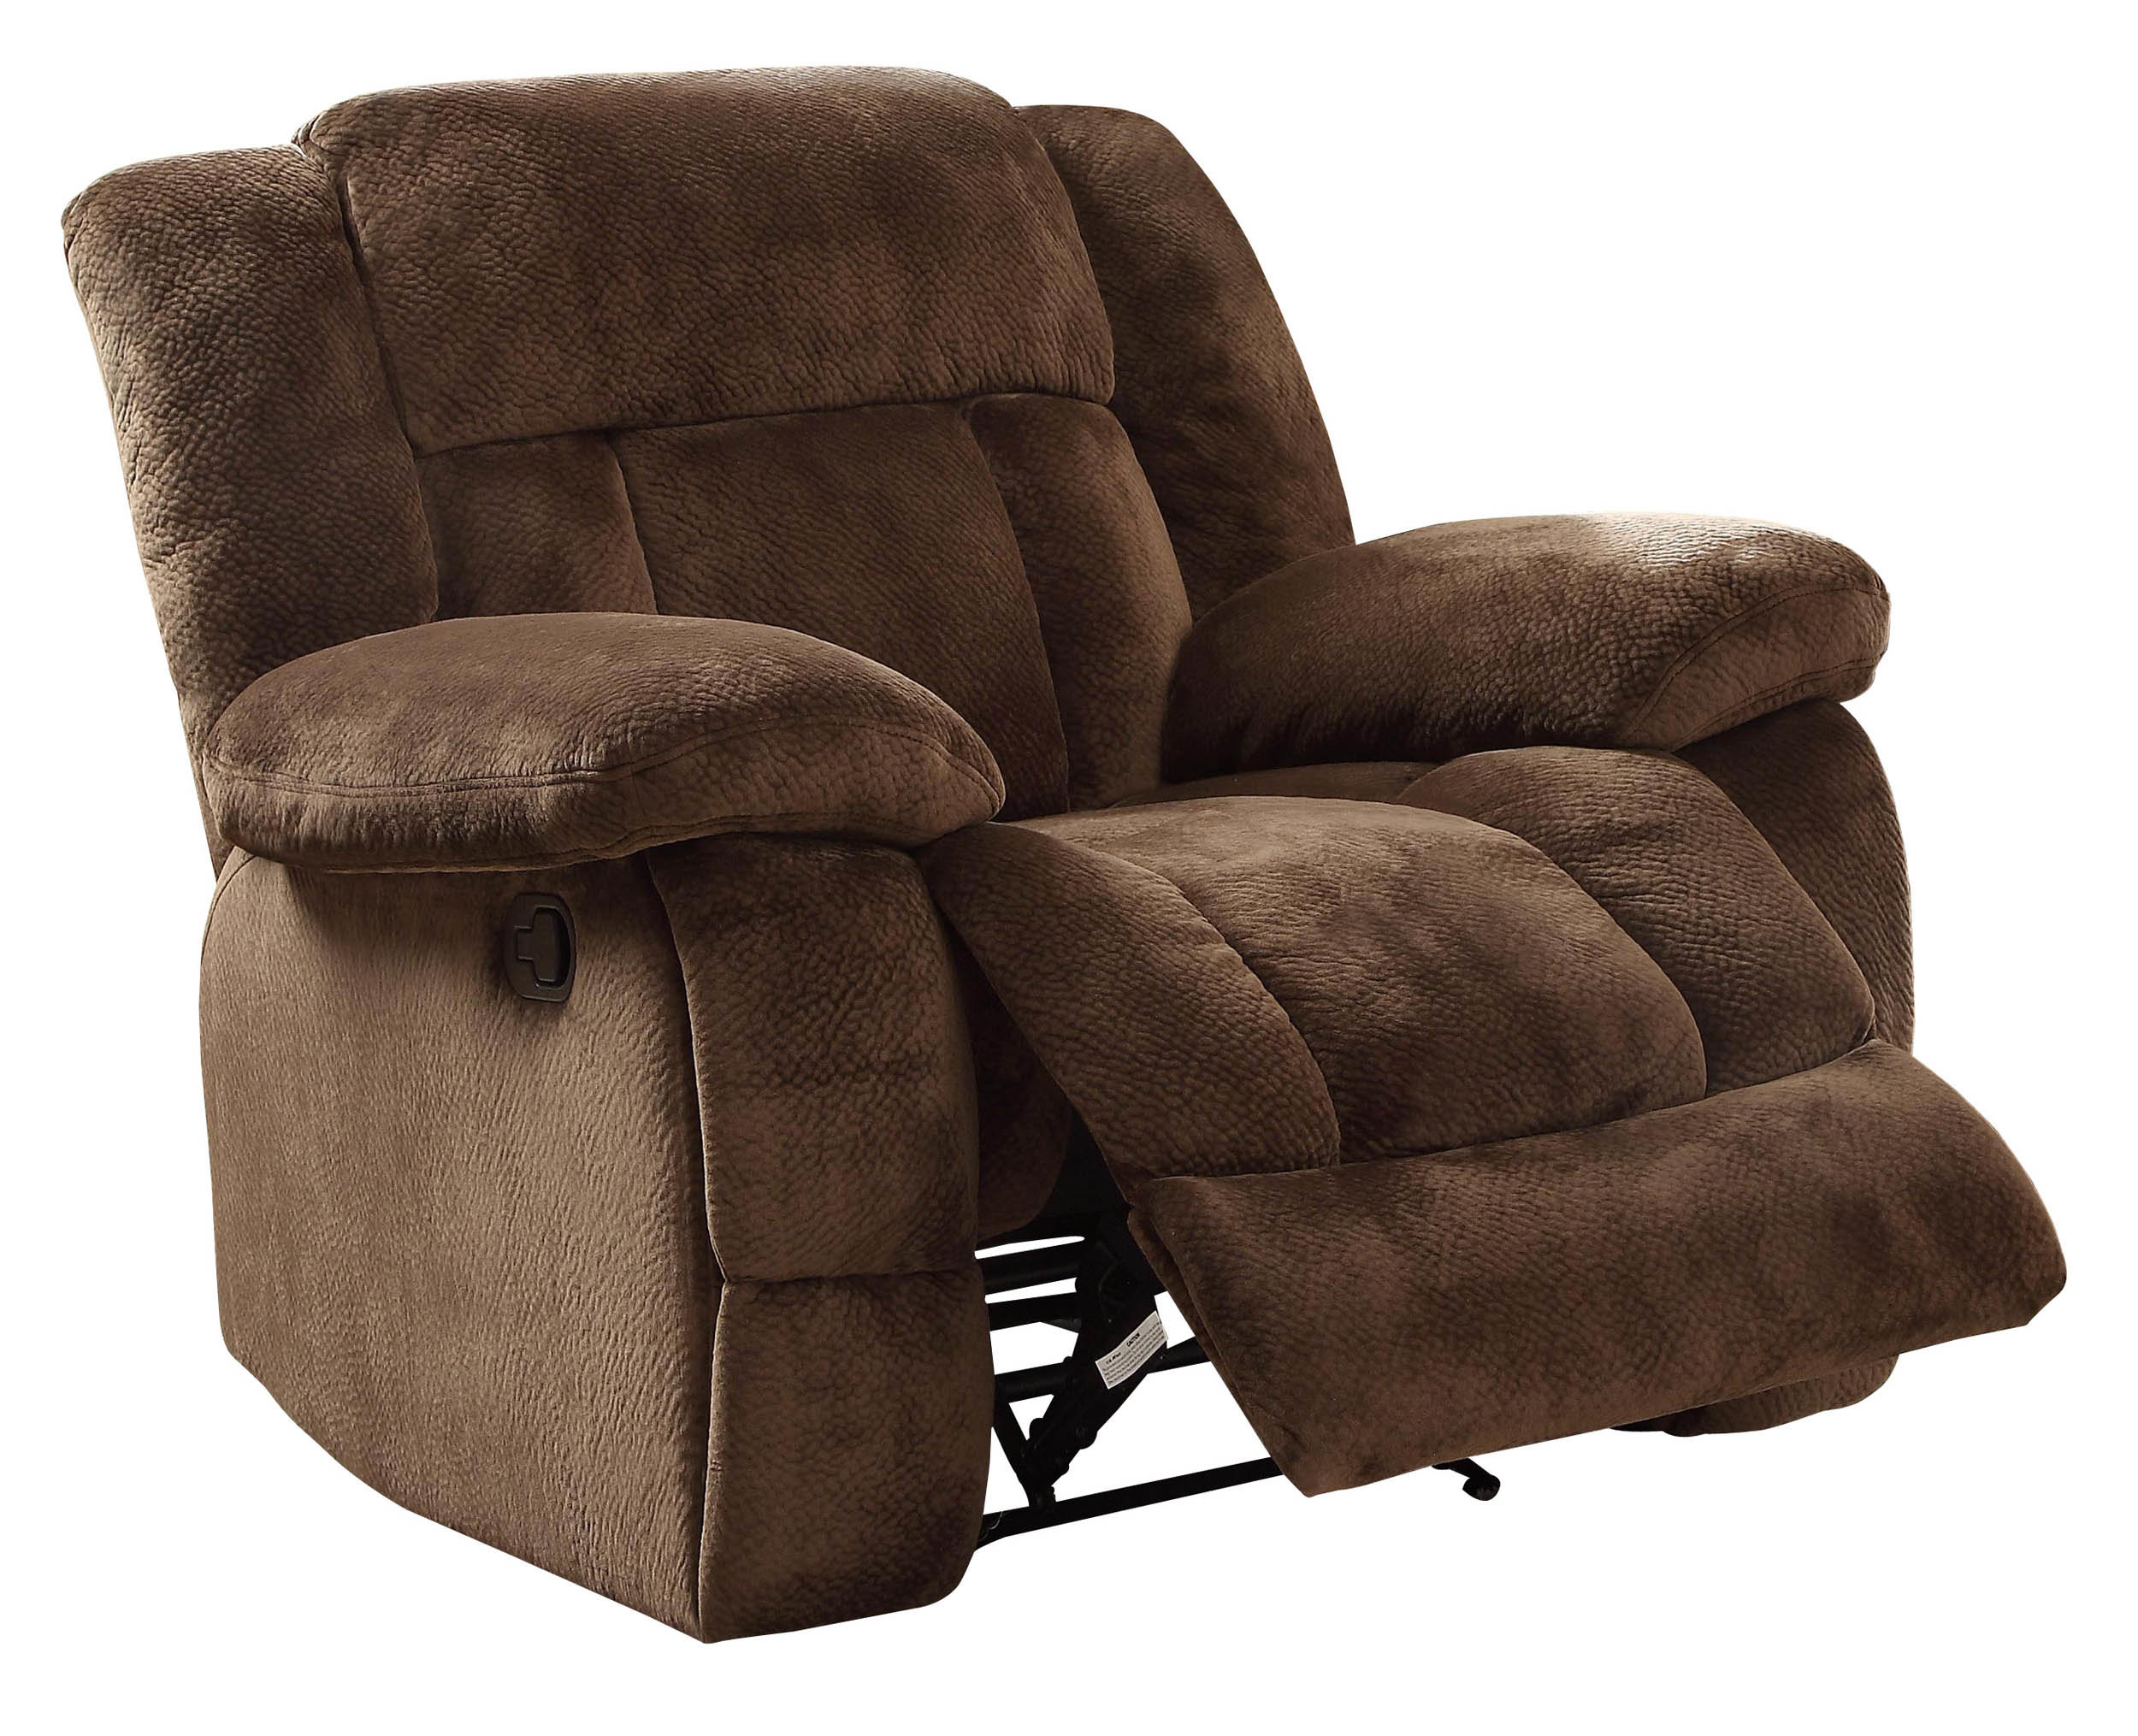 Darby Home Co Dale Manual Glider Recliner & Reviews | Wayfair With Regard To Dale Iii Polyurethane Swivel Glider Recliners (View 2 of 25)